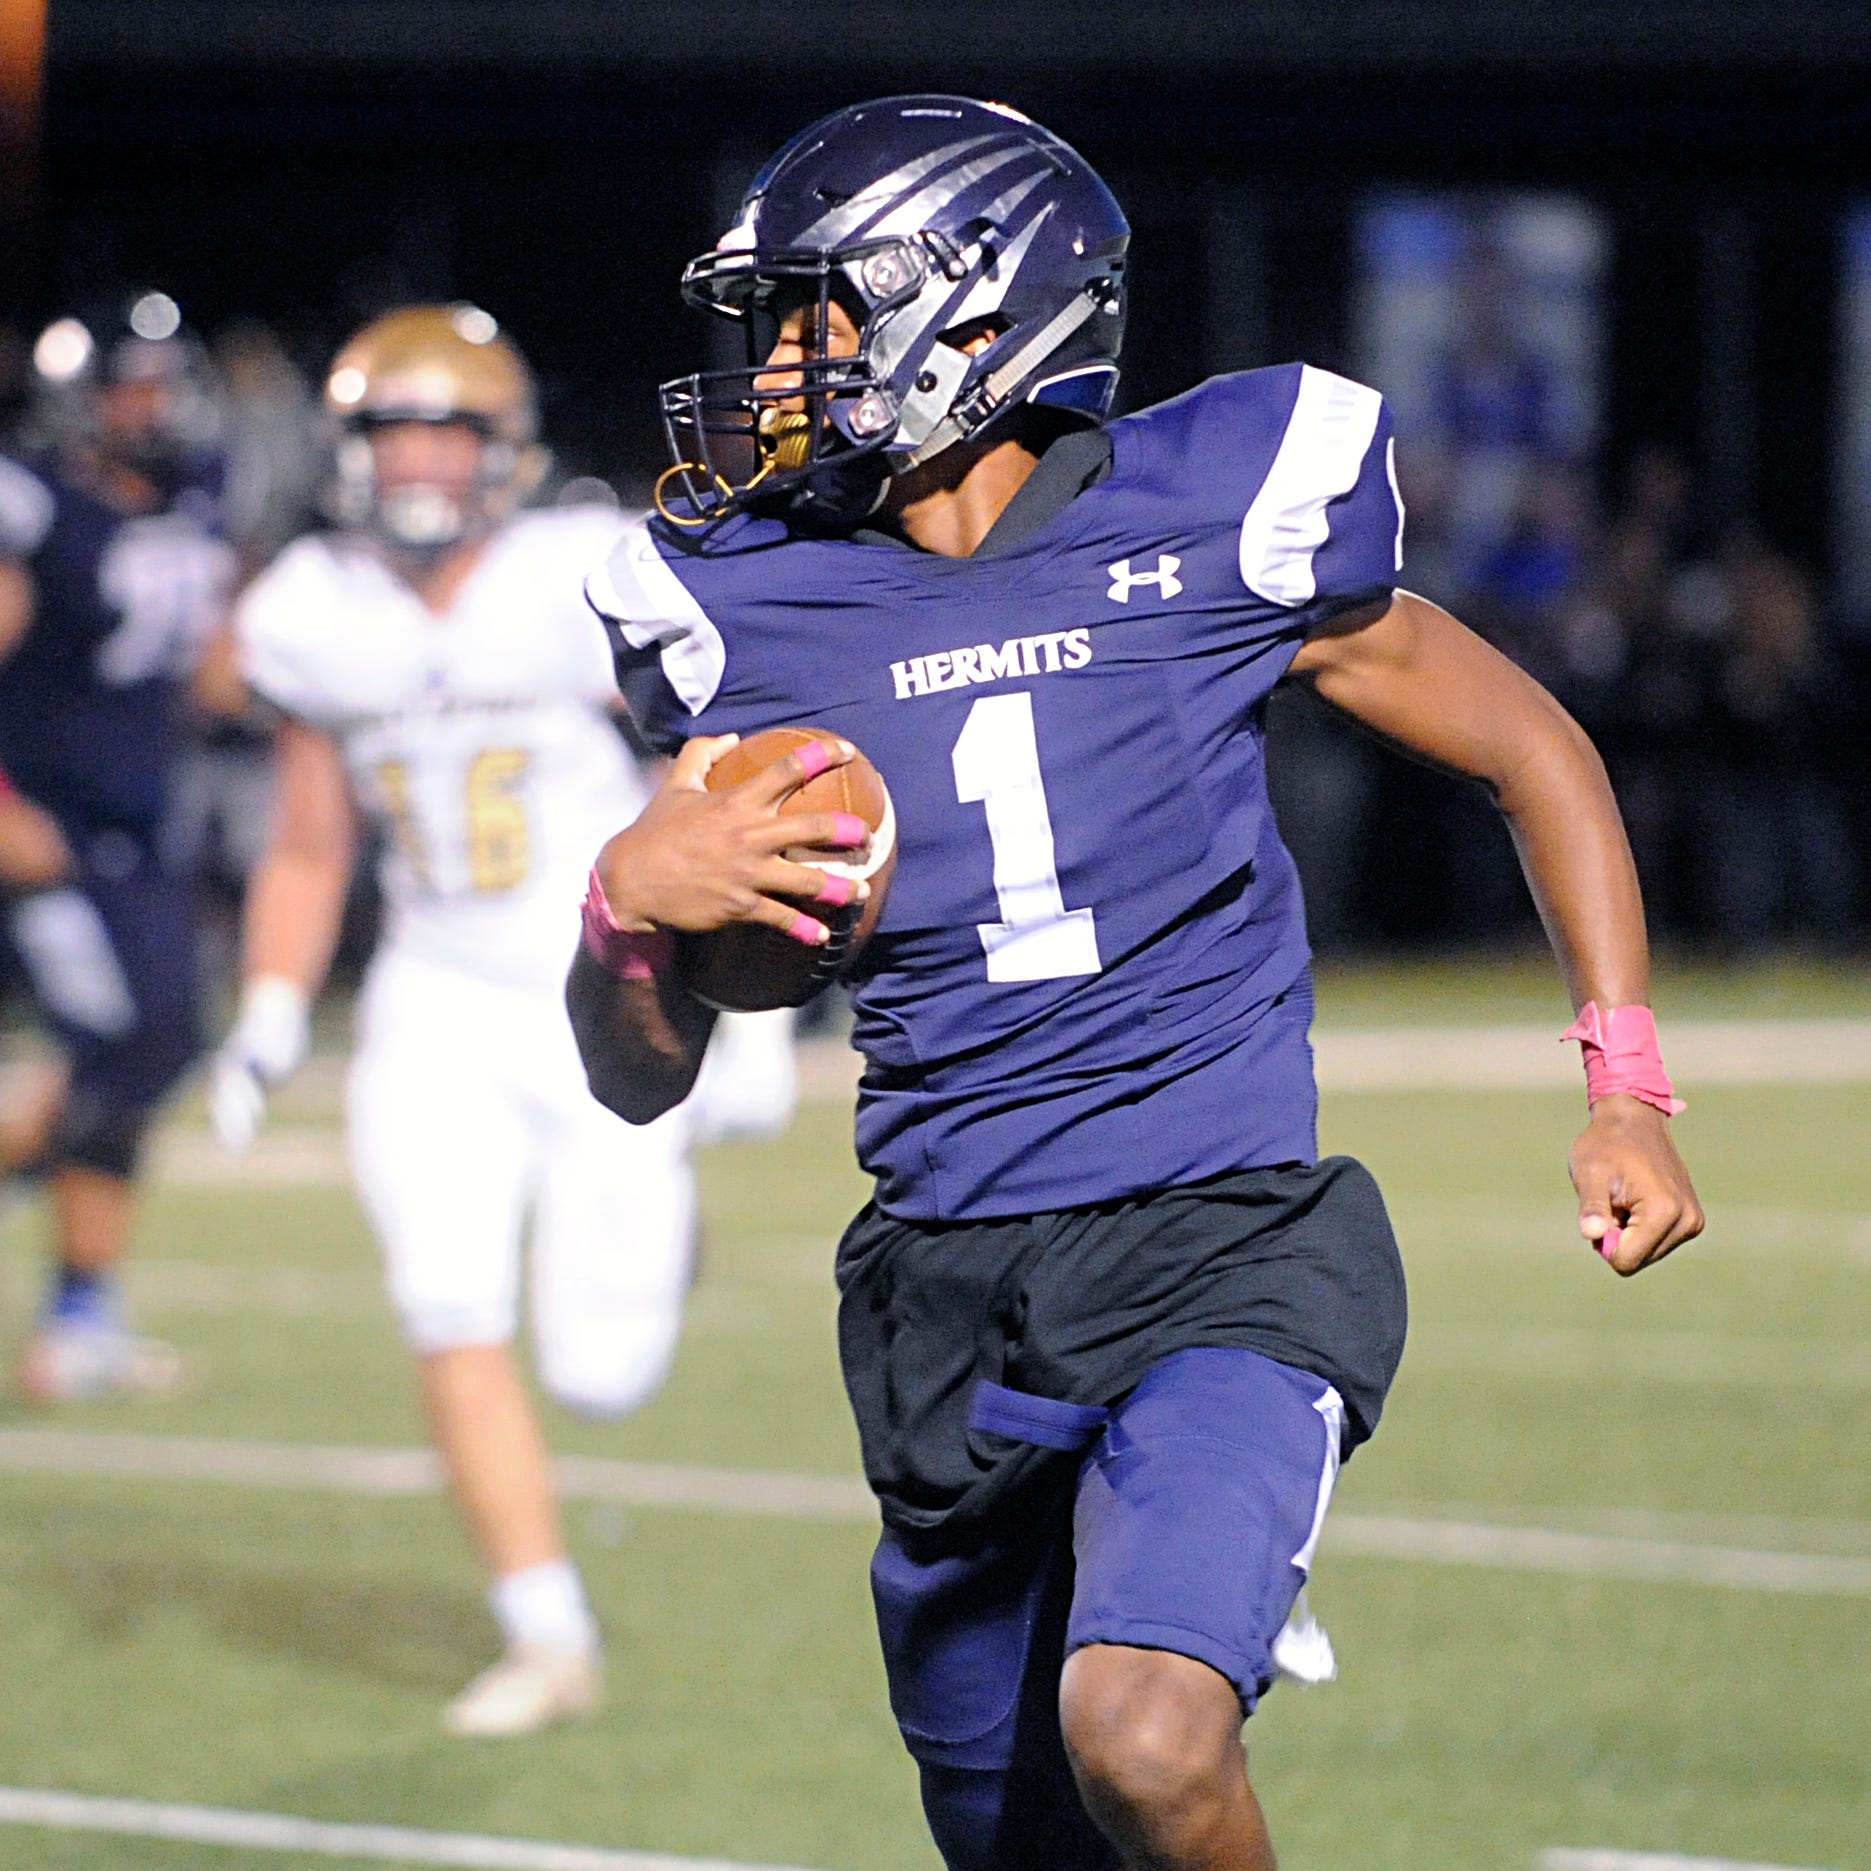 South Jersey high school football scores for Week 7